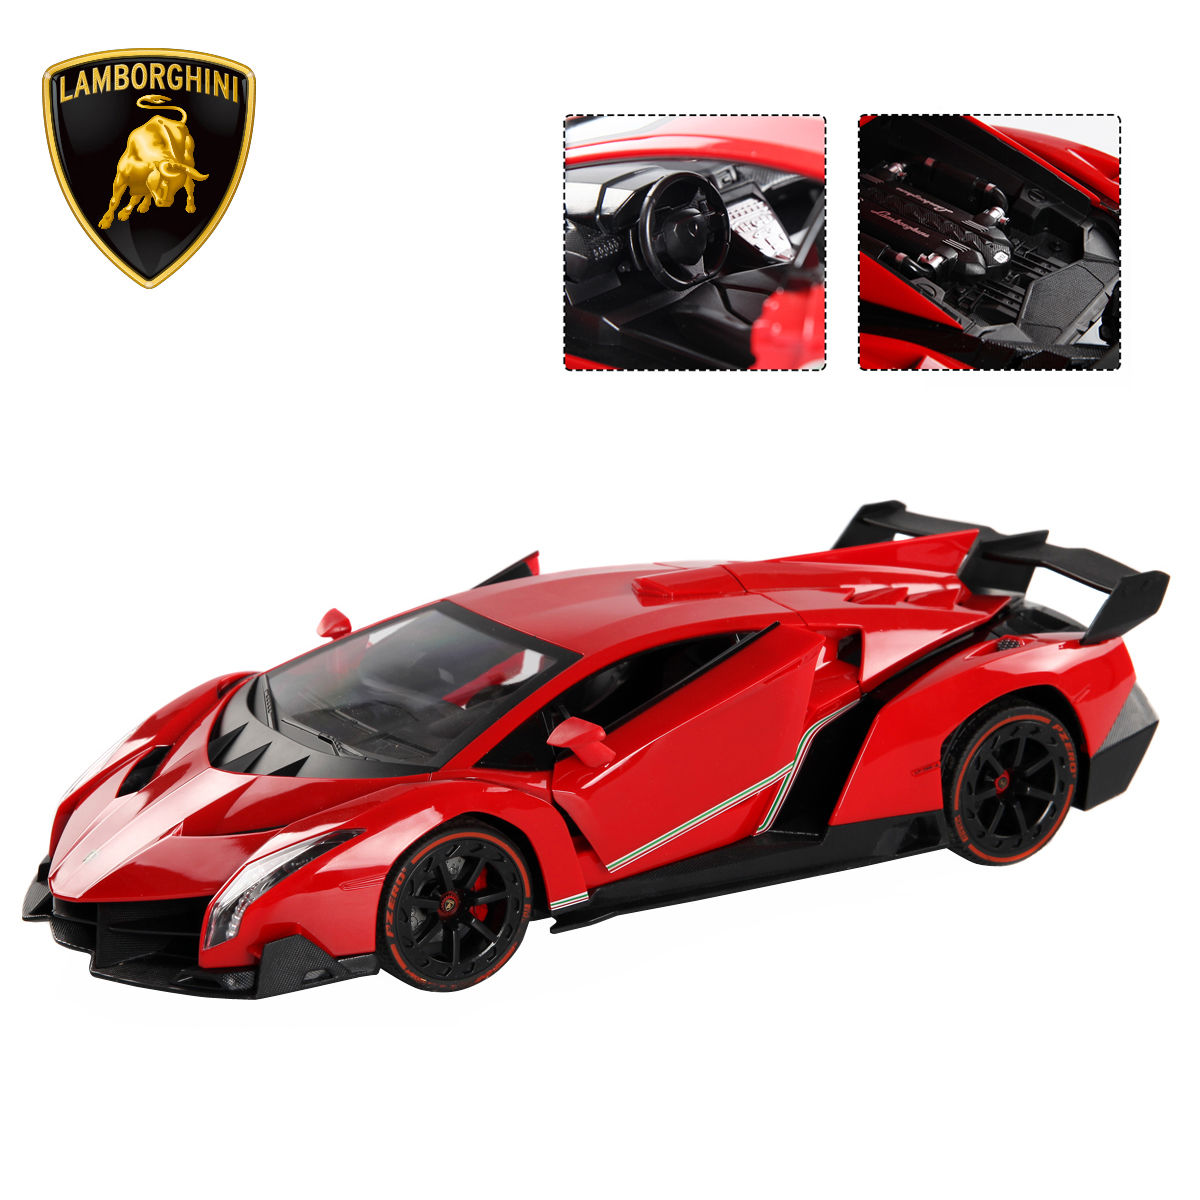 Costway 1:14 4CH Lamborghini Veneno RC Car Radio Remote Control w/ Open Doors Red